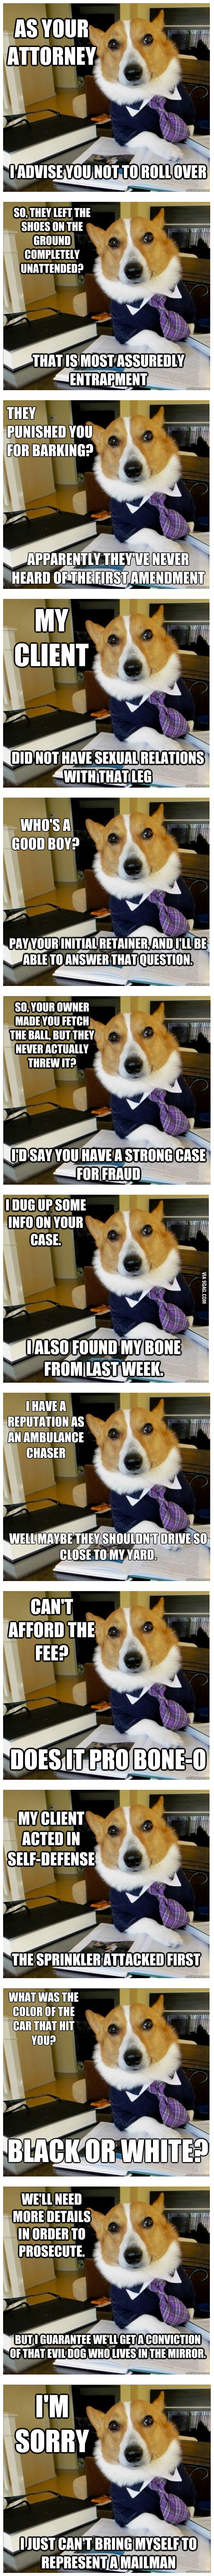 The Best Of The Lawyer Dog Meme